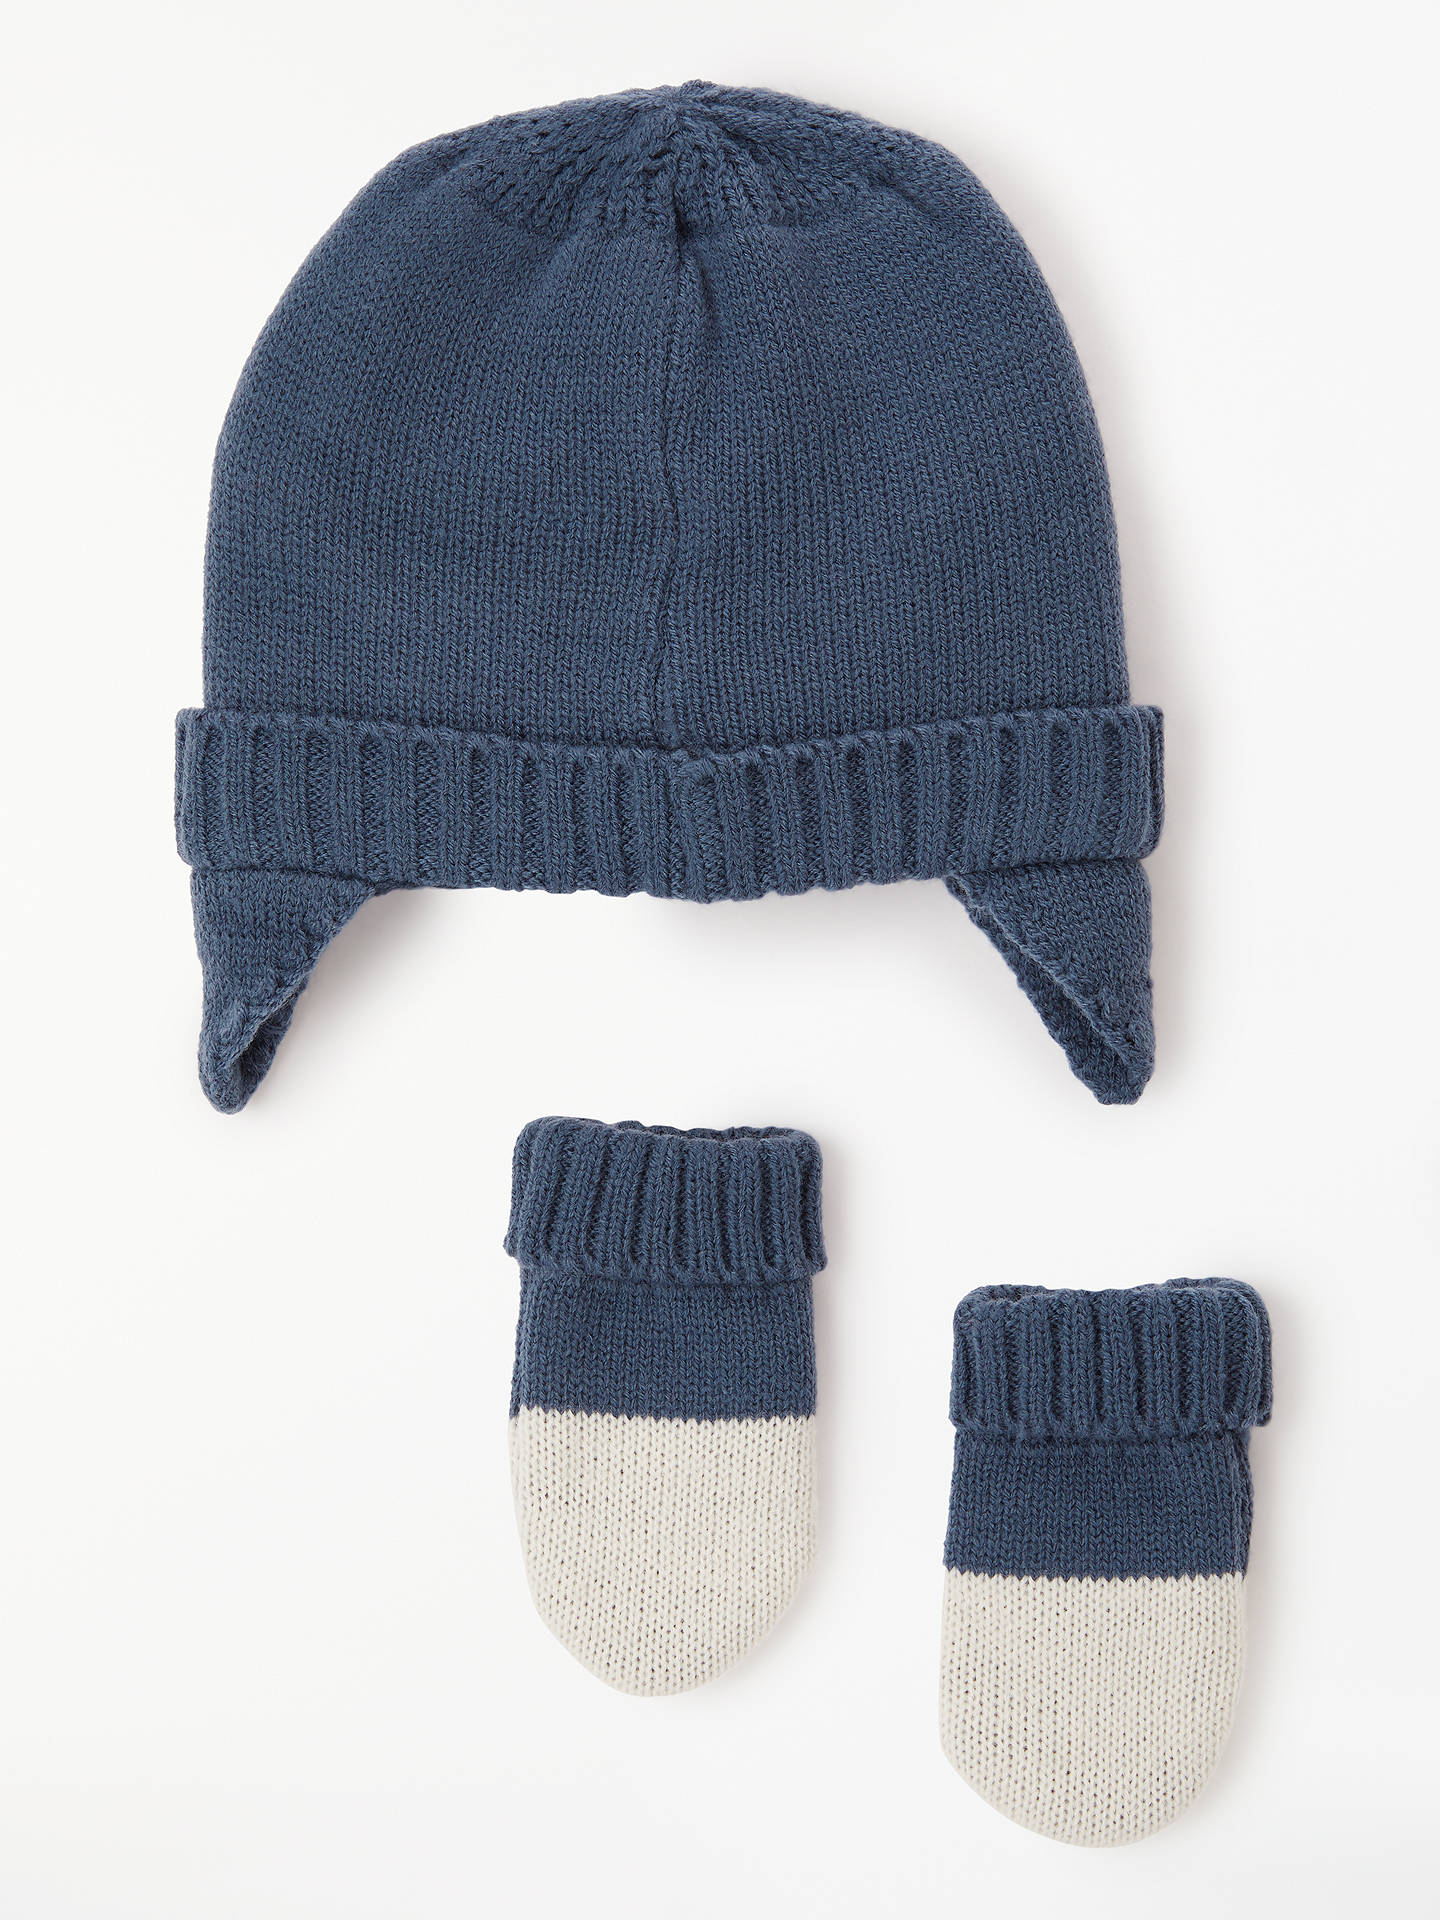 4e5f8f20b28 ... Buy John Lewis   Partners Baby Penguin Hat and Mittens Set